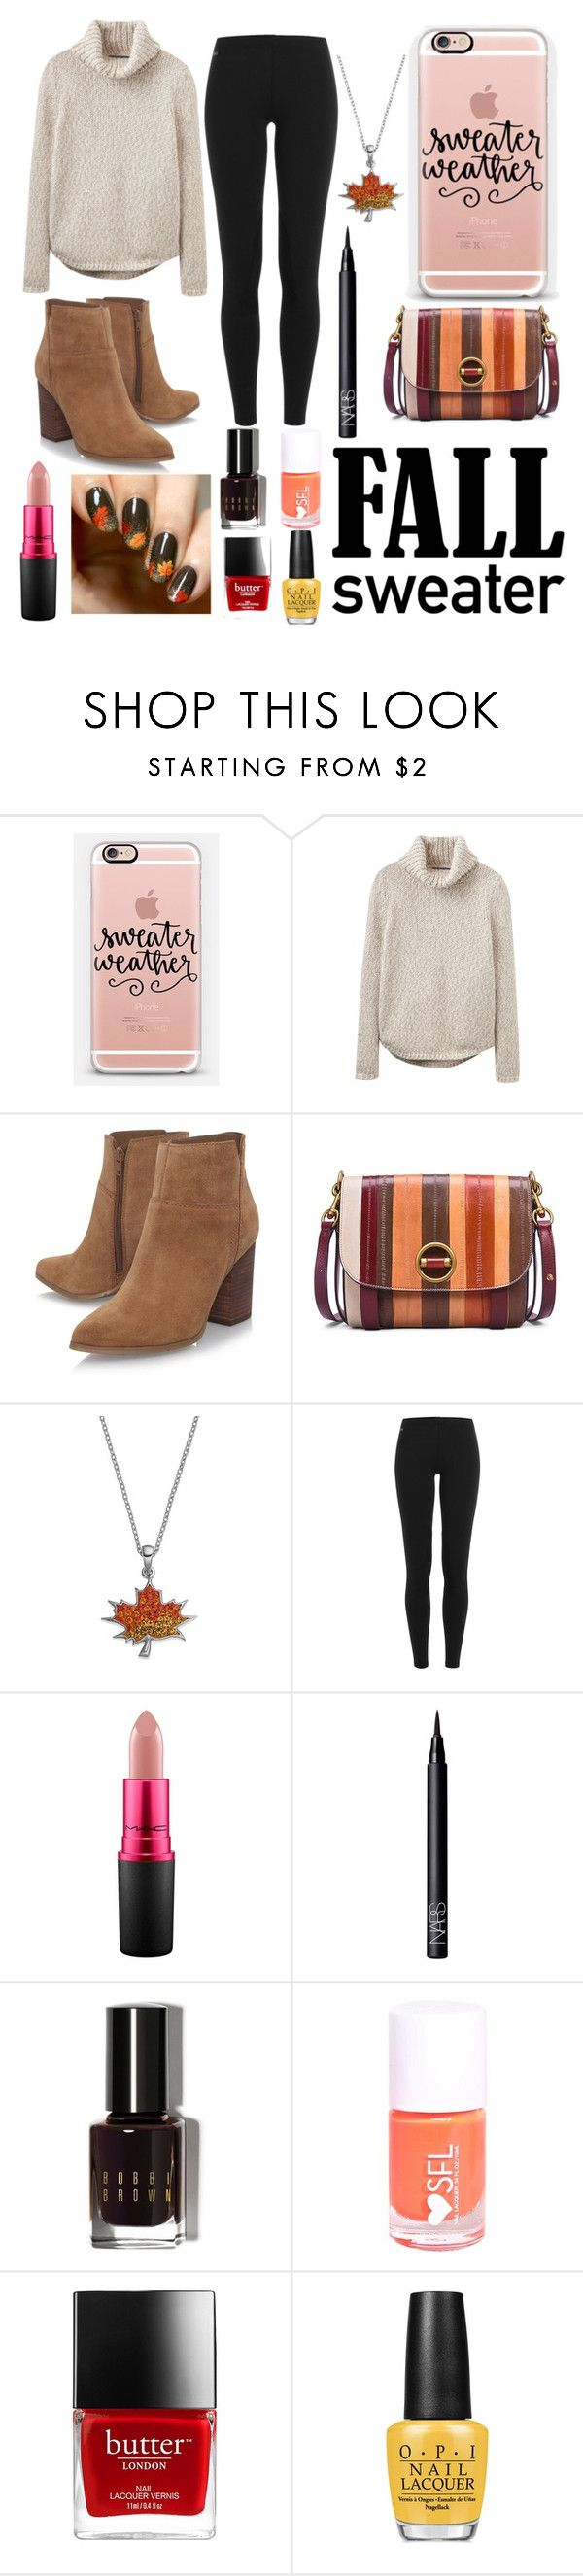 """Sweater Weather"" by kitty-chann13 ❤ liked on Polyvore featuring Casetify, Joules, Nine West, Tory Burch, Silver Luxuries, Polo Ralph Lauren, MAC Cosmetics, NARS Cosmetics, Bobbi Brown Cosmetics and OPI"